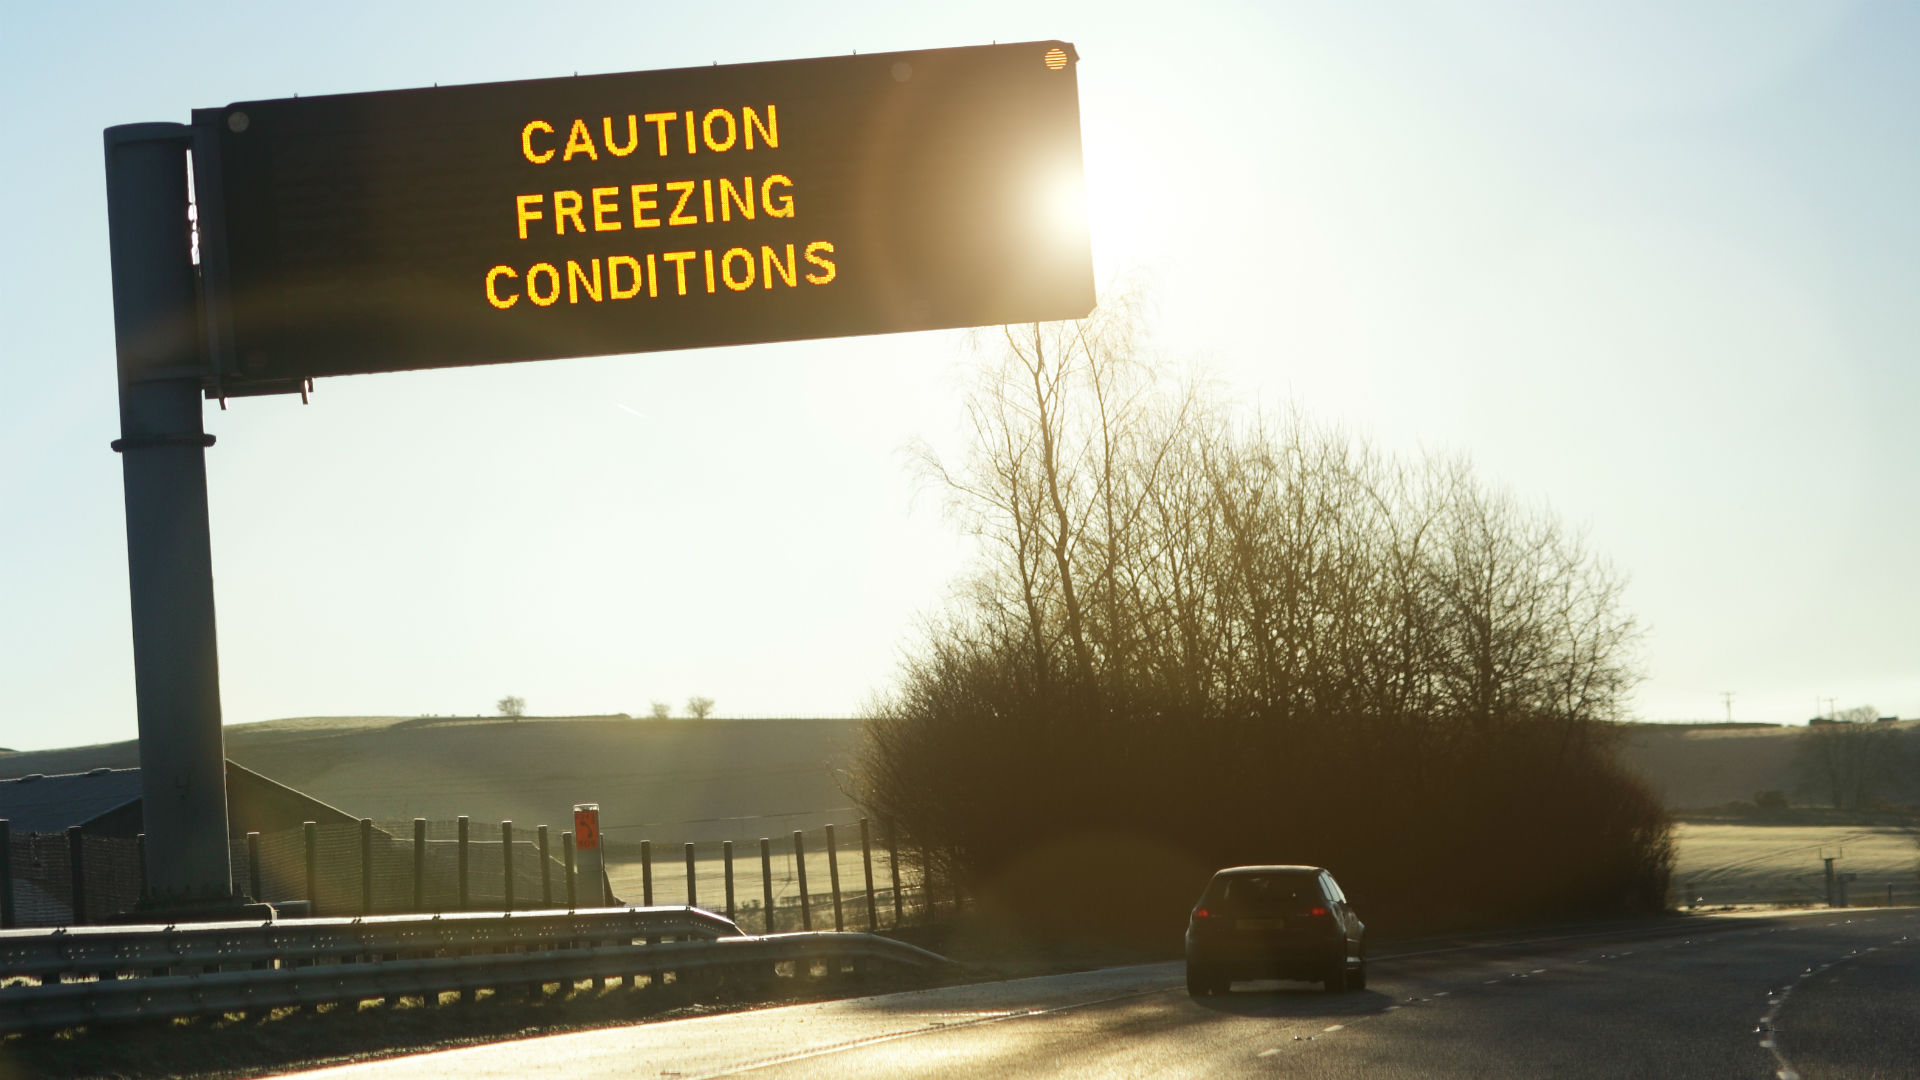 Caution freezing conditions